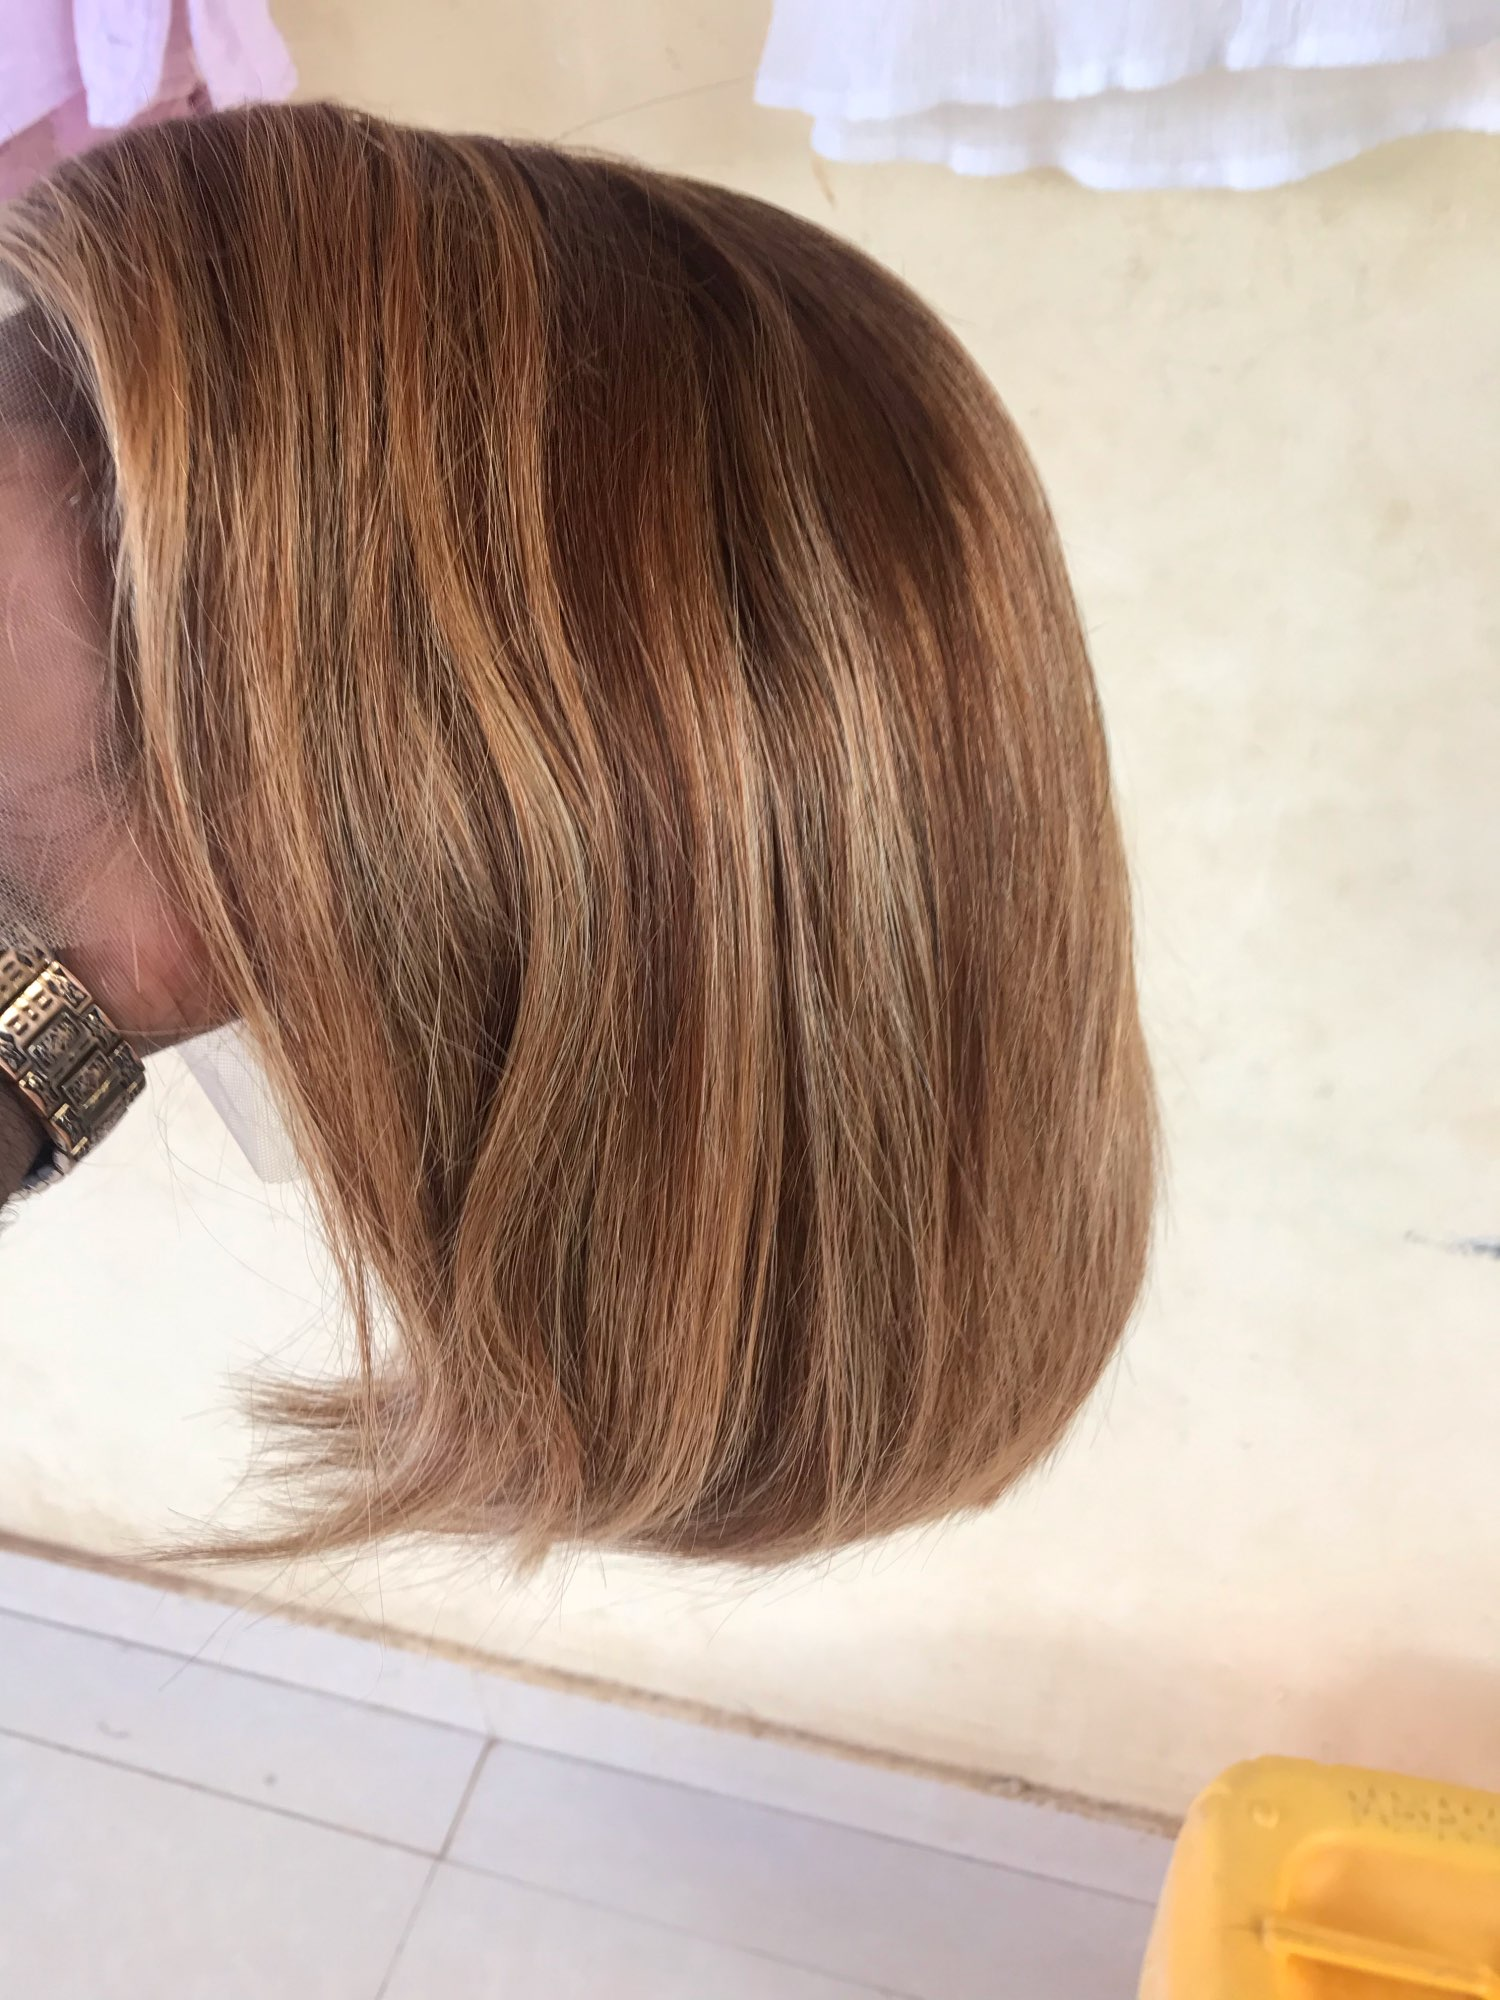 Highlight Human Hair Wigs Bob Short Straight Color 4/27 Ombre Brown 150% Remy 13x1 T Part Lace Brazilian Highlight Wig photo review